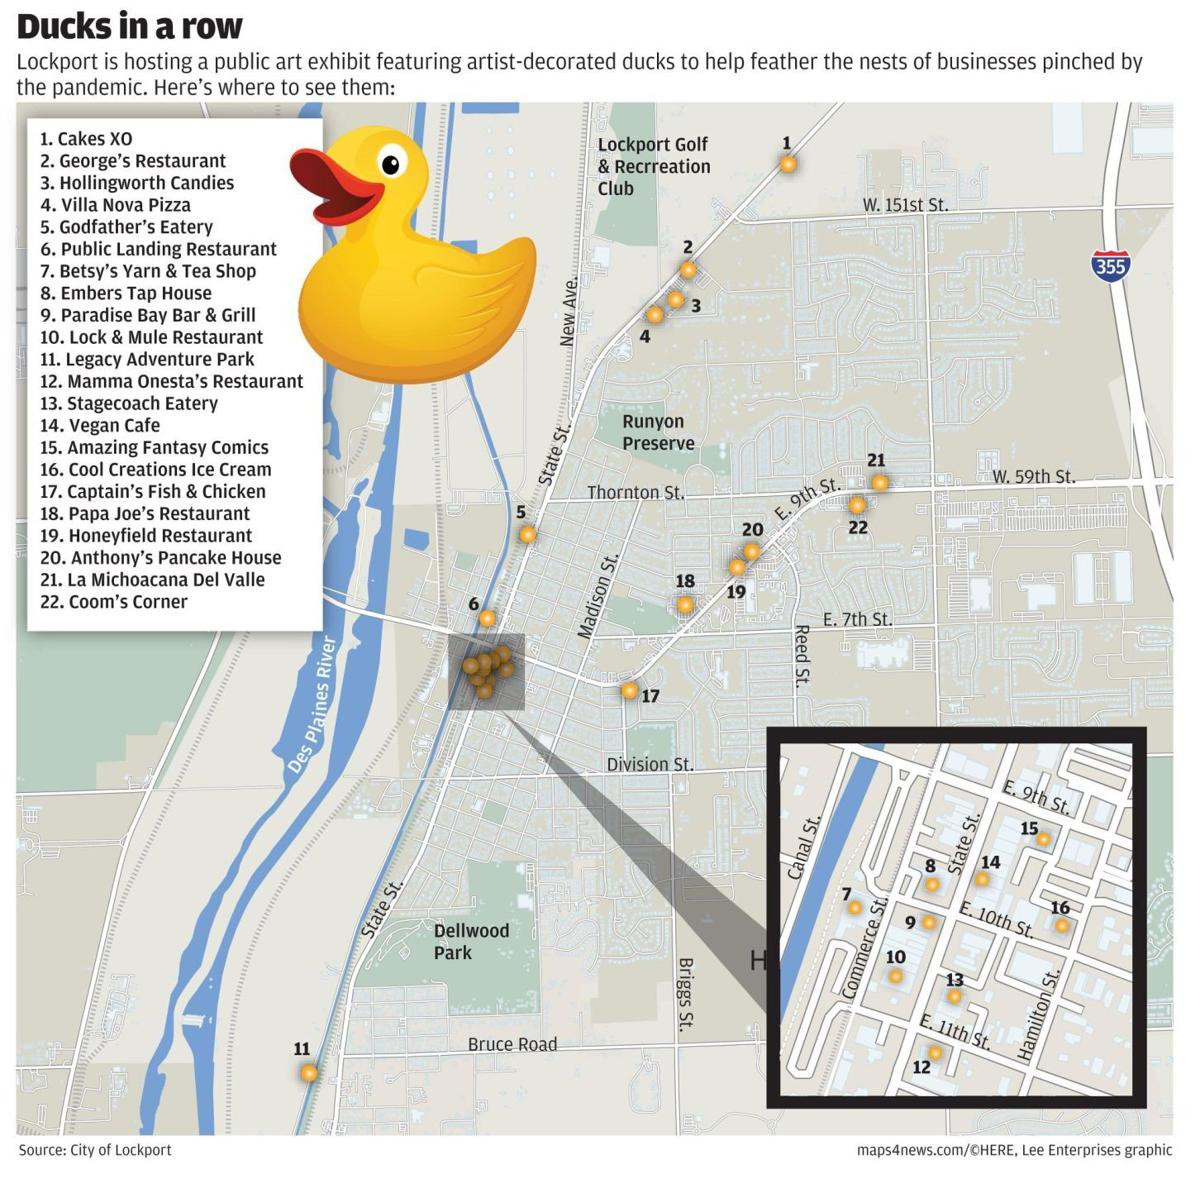 Lockport enlists ducks to help patrons flock back to small businesses